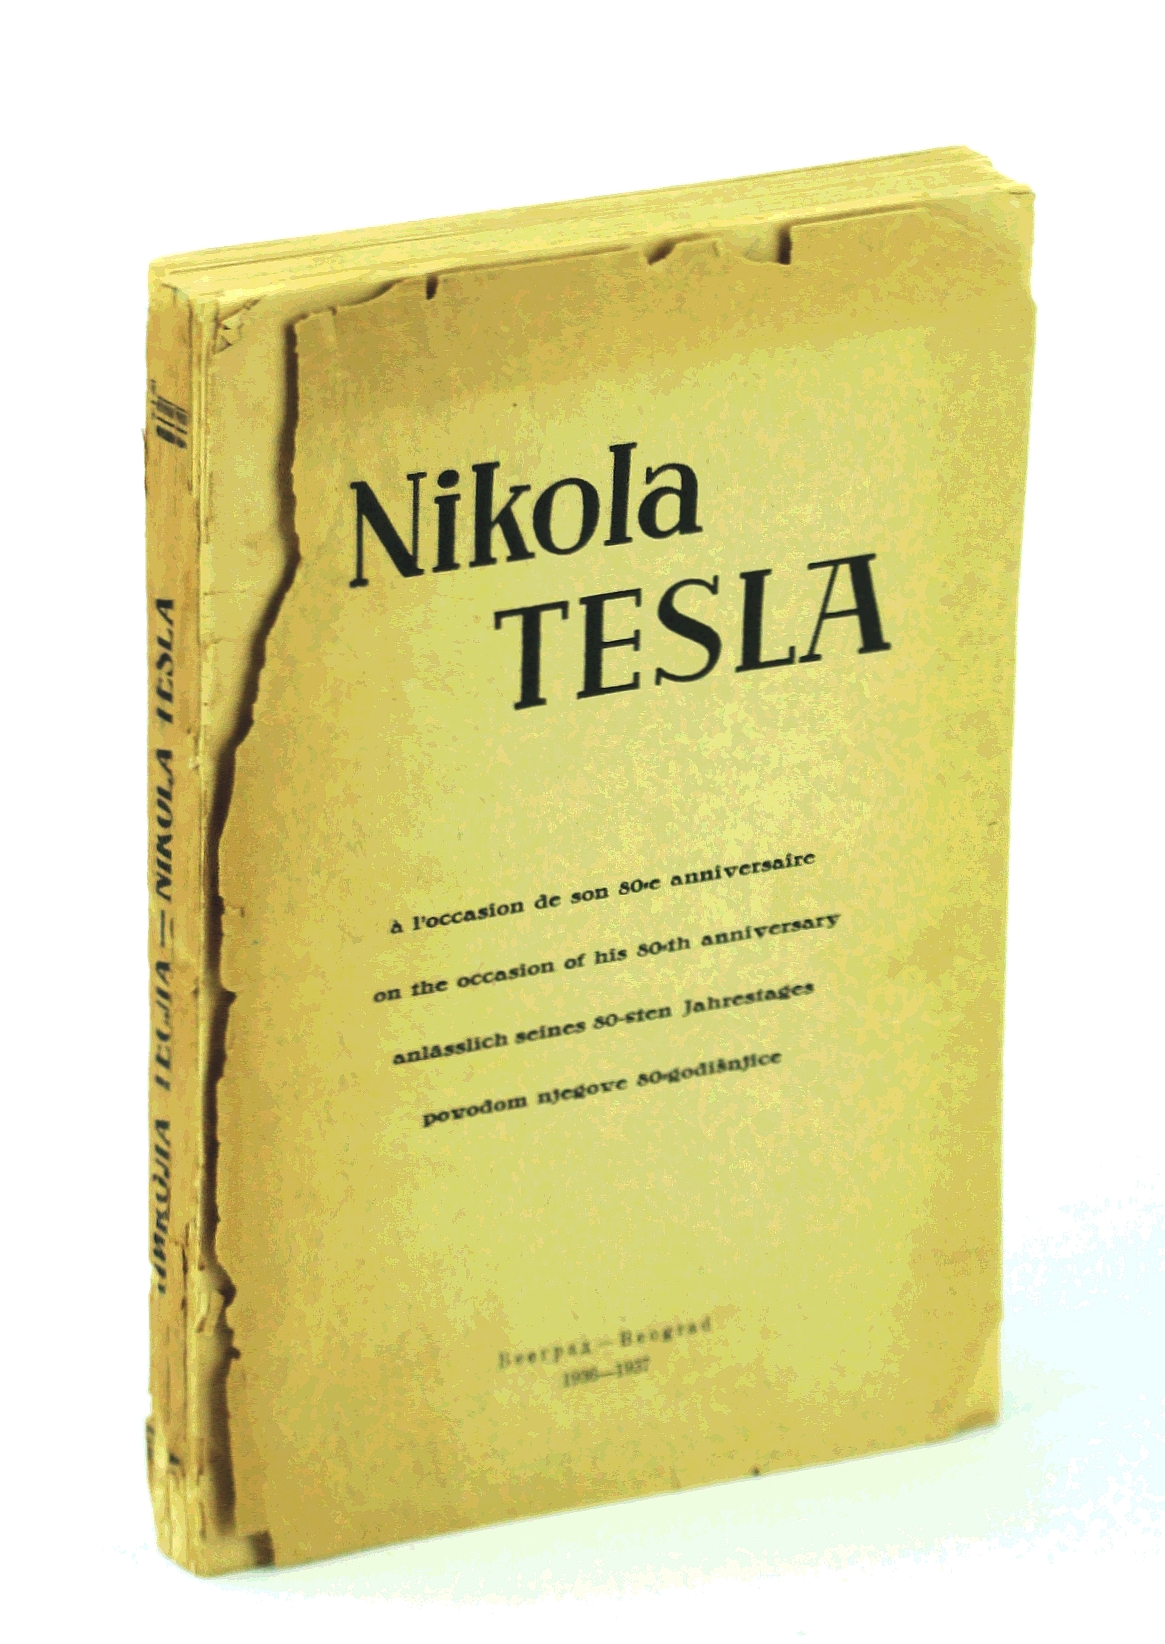 Image for Nikola Tesla - Memorandum Book on the Occasion of His 80th Birthday